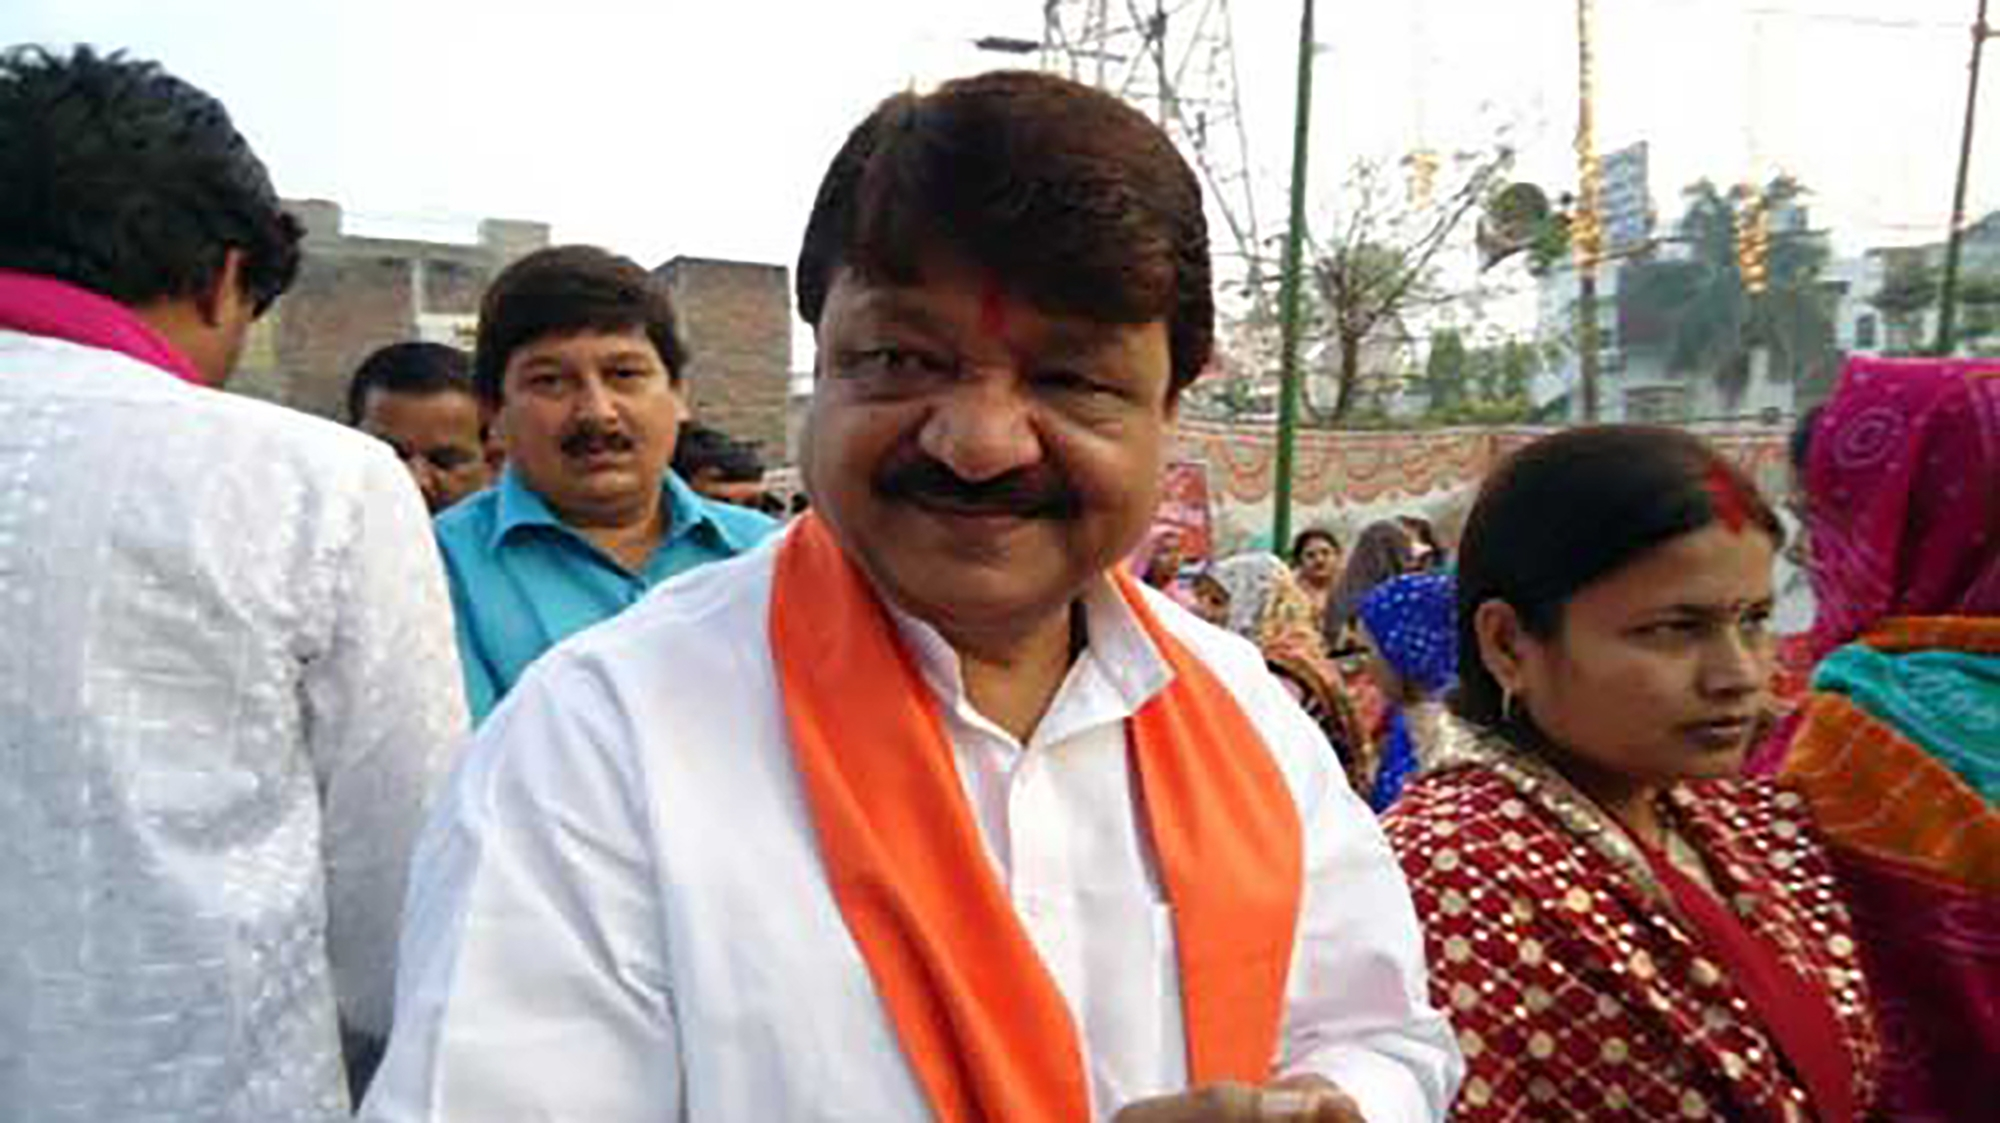 Kailash vijayvargiya wife sexual dysfunction